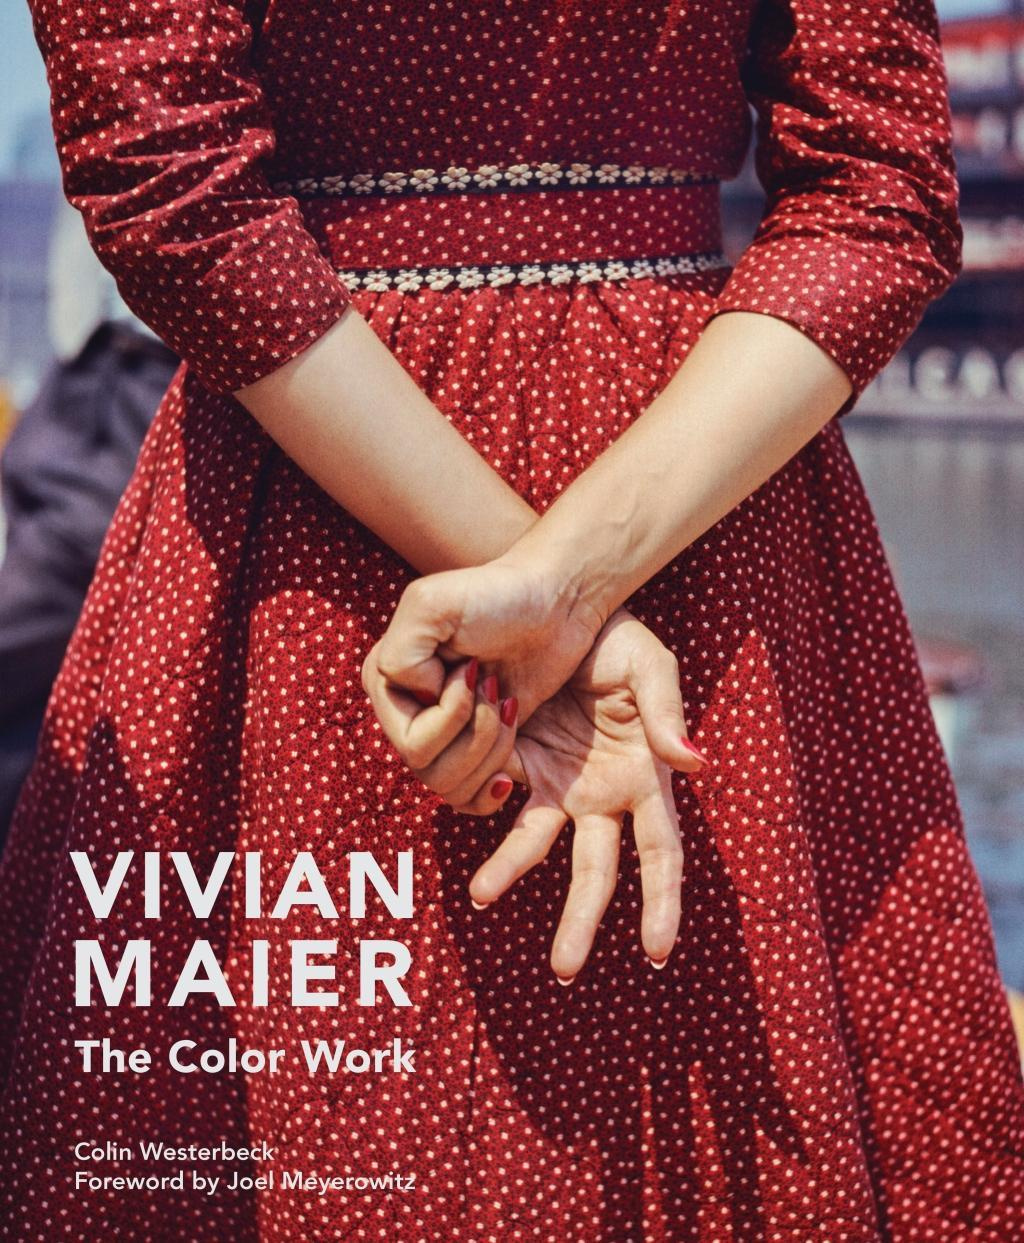 Vivian Maier: The Color Work by Colin Westerbeck, ISBN: 9780062795571